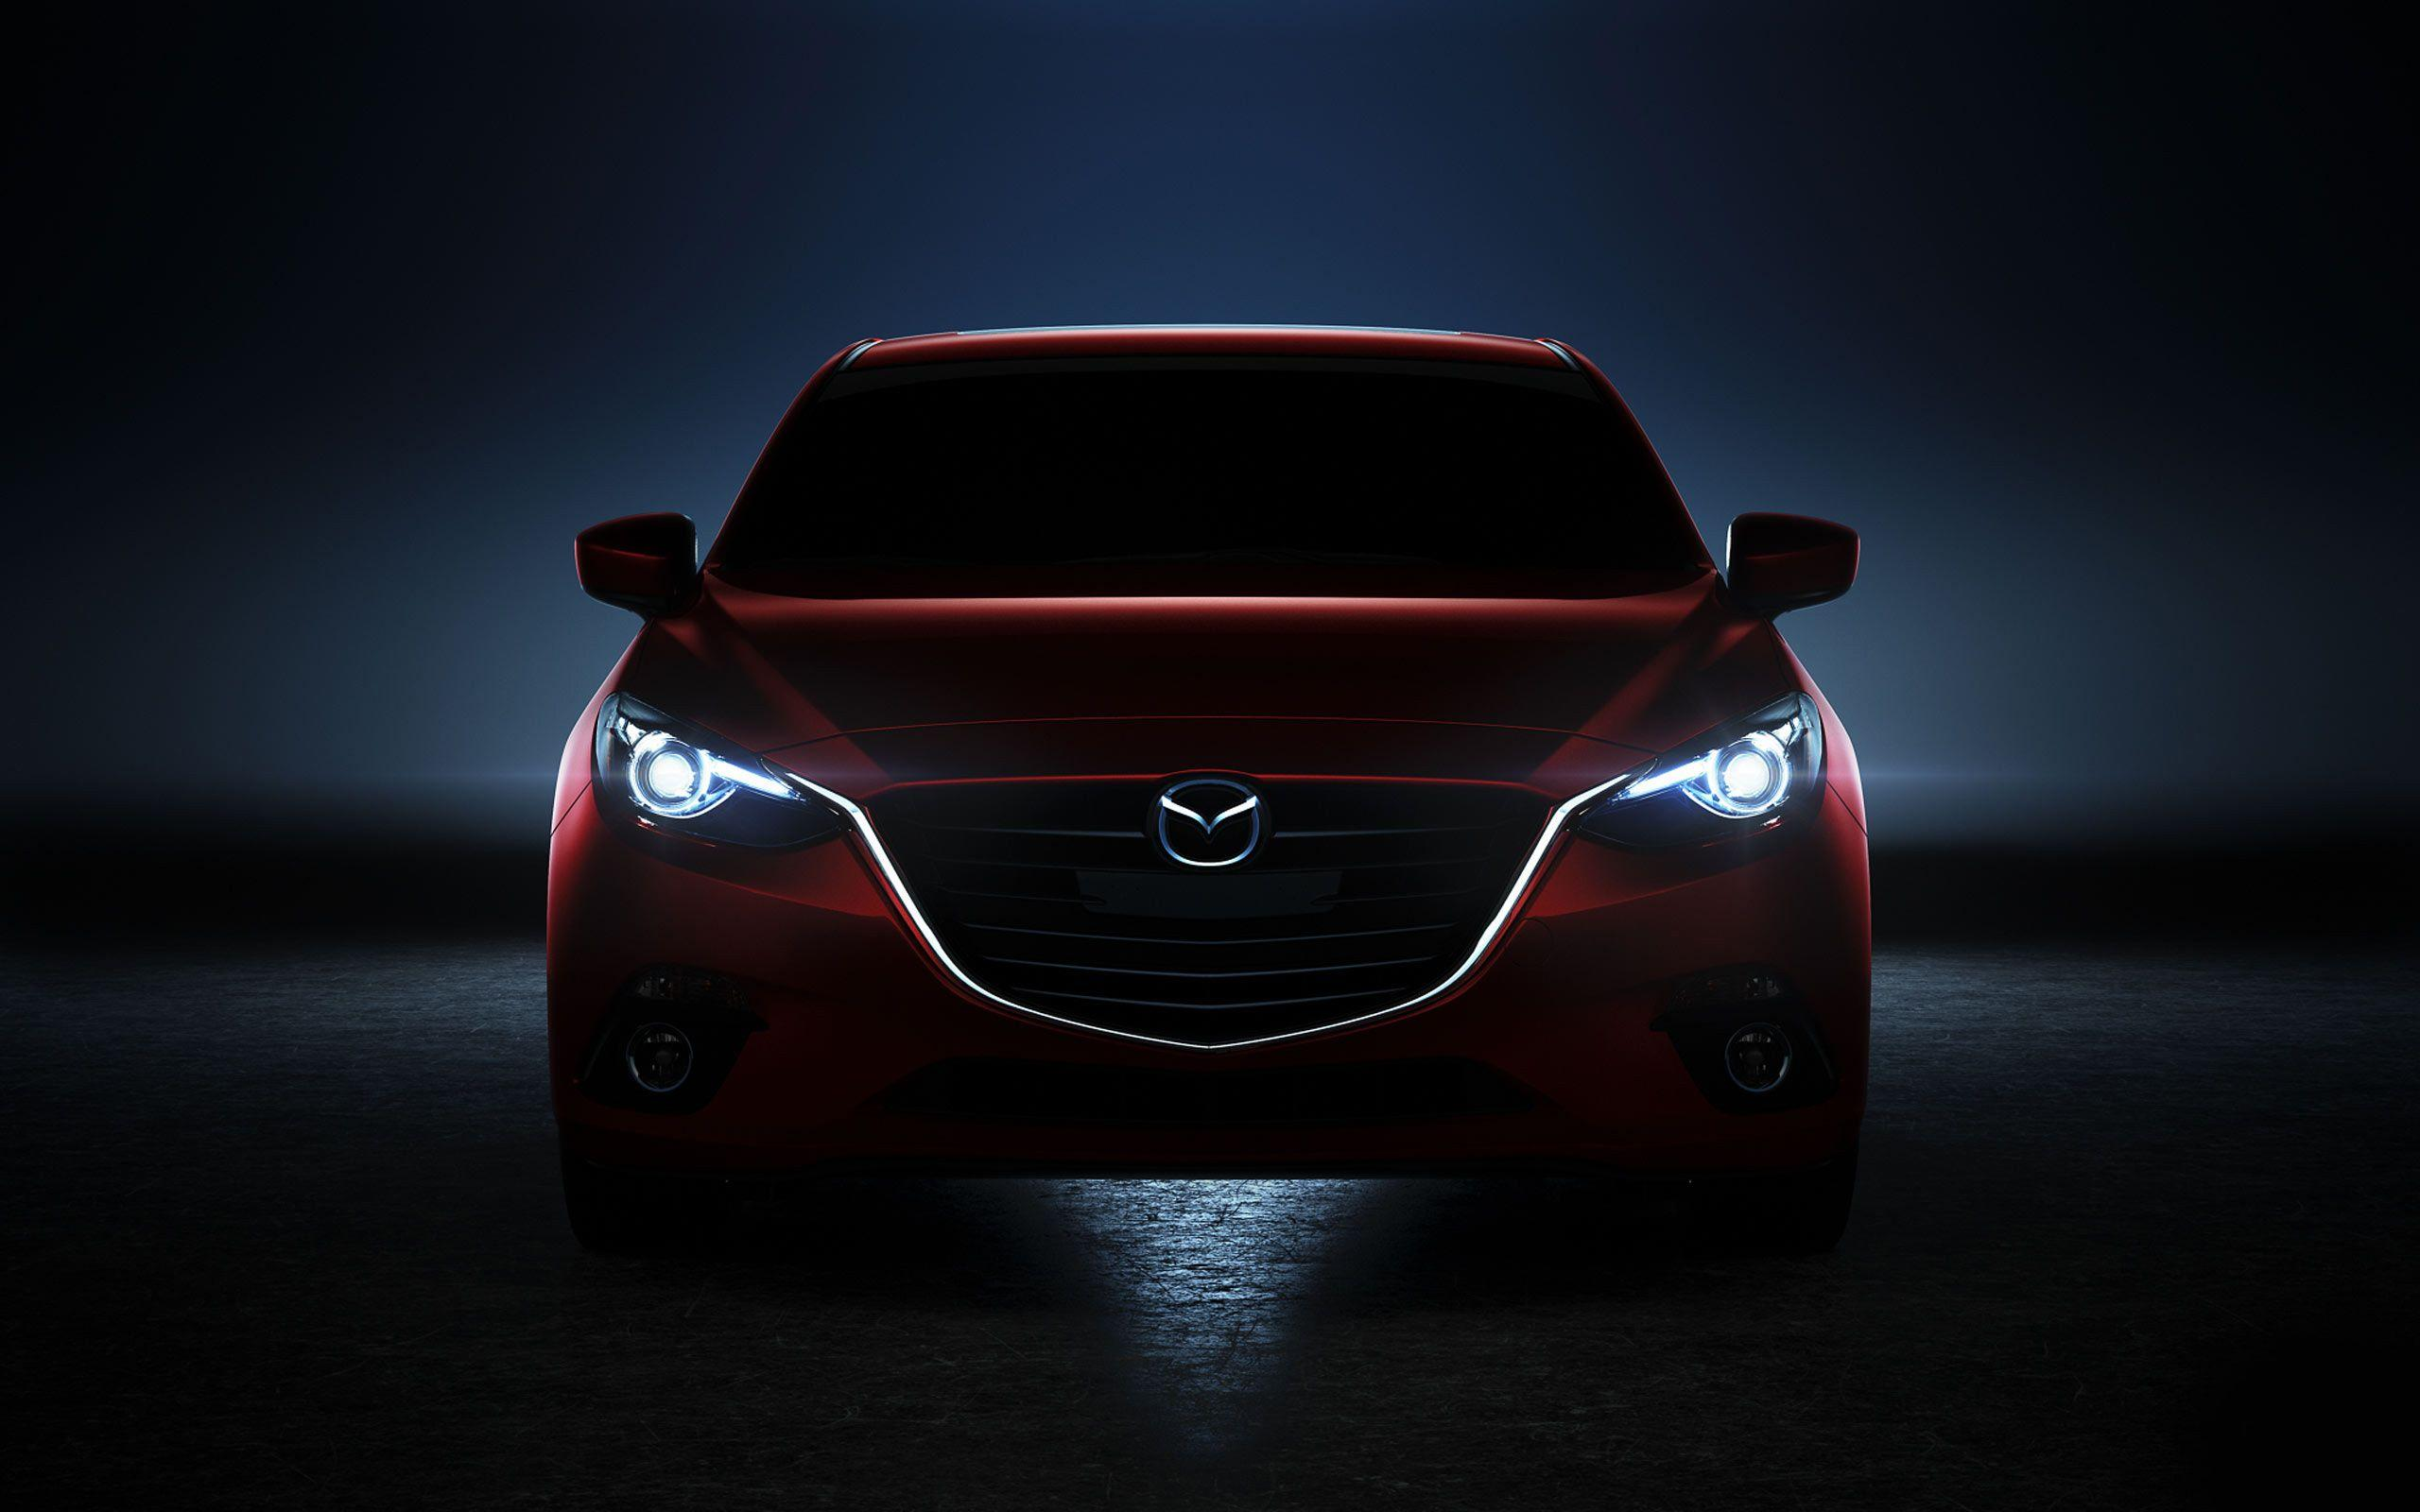 2014 Mazda 3 Wallpapers